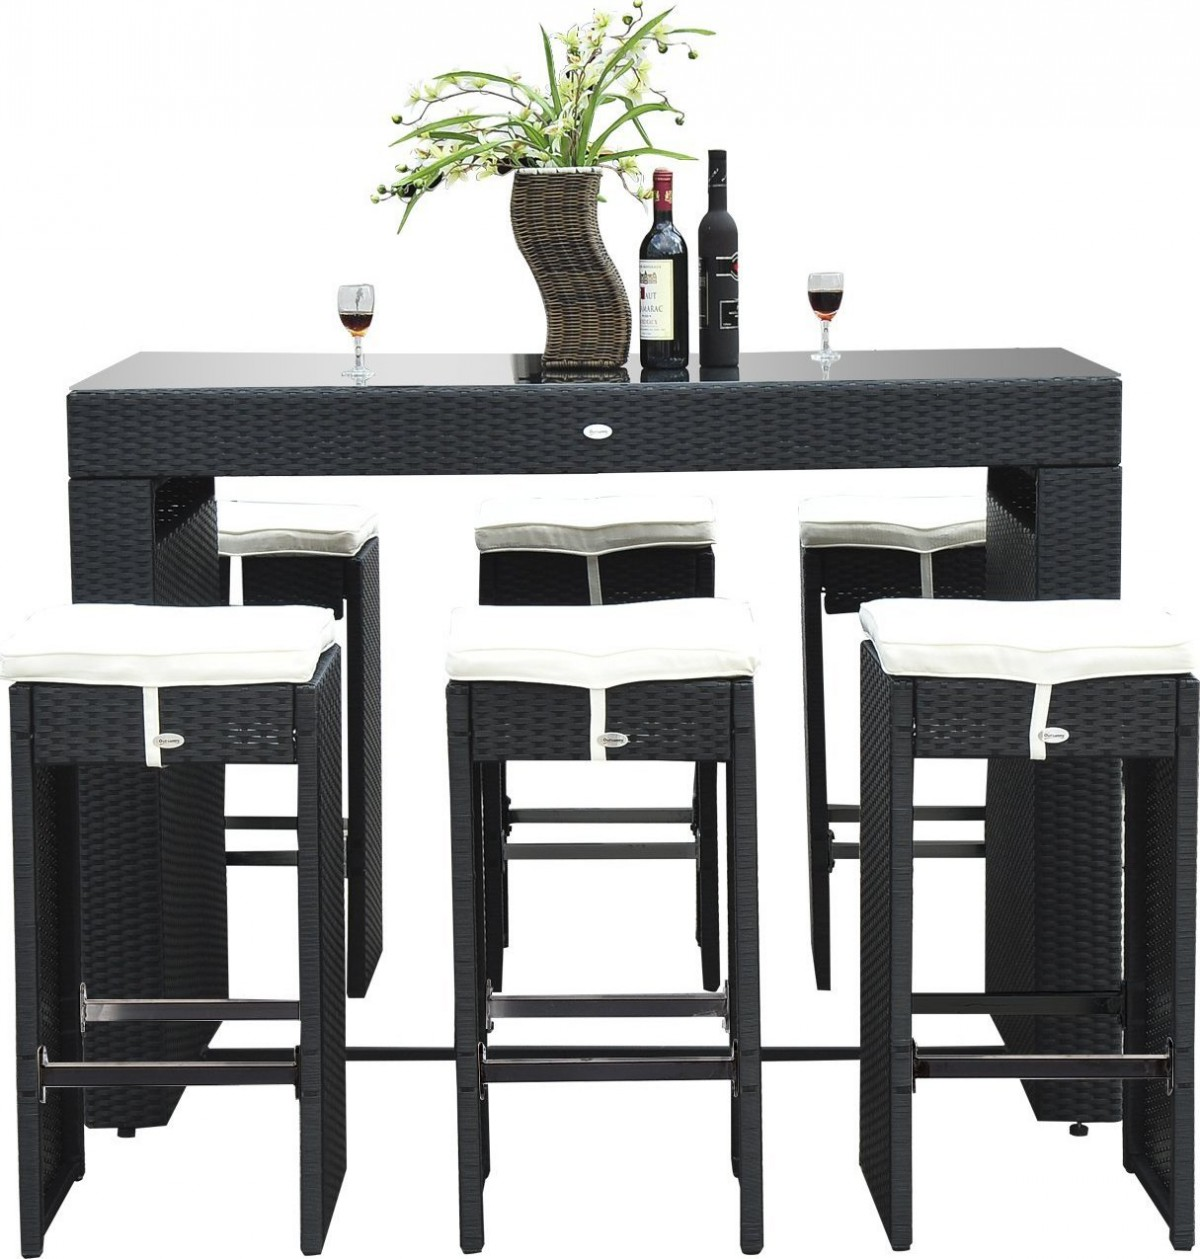 Outsunny 7 Piece Rattan Wicker Bar Stool Dining Table Set